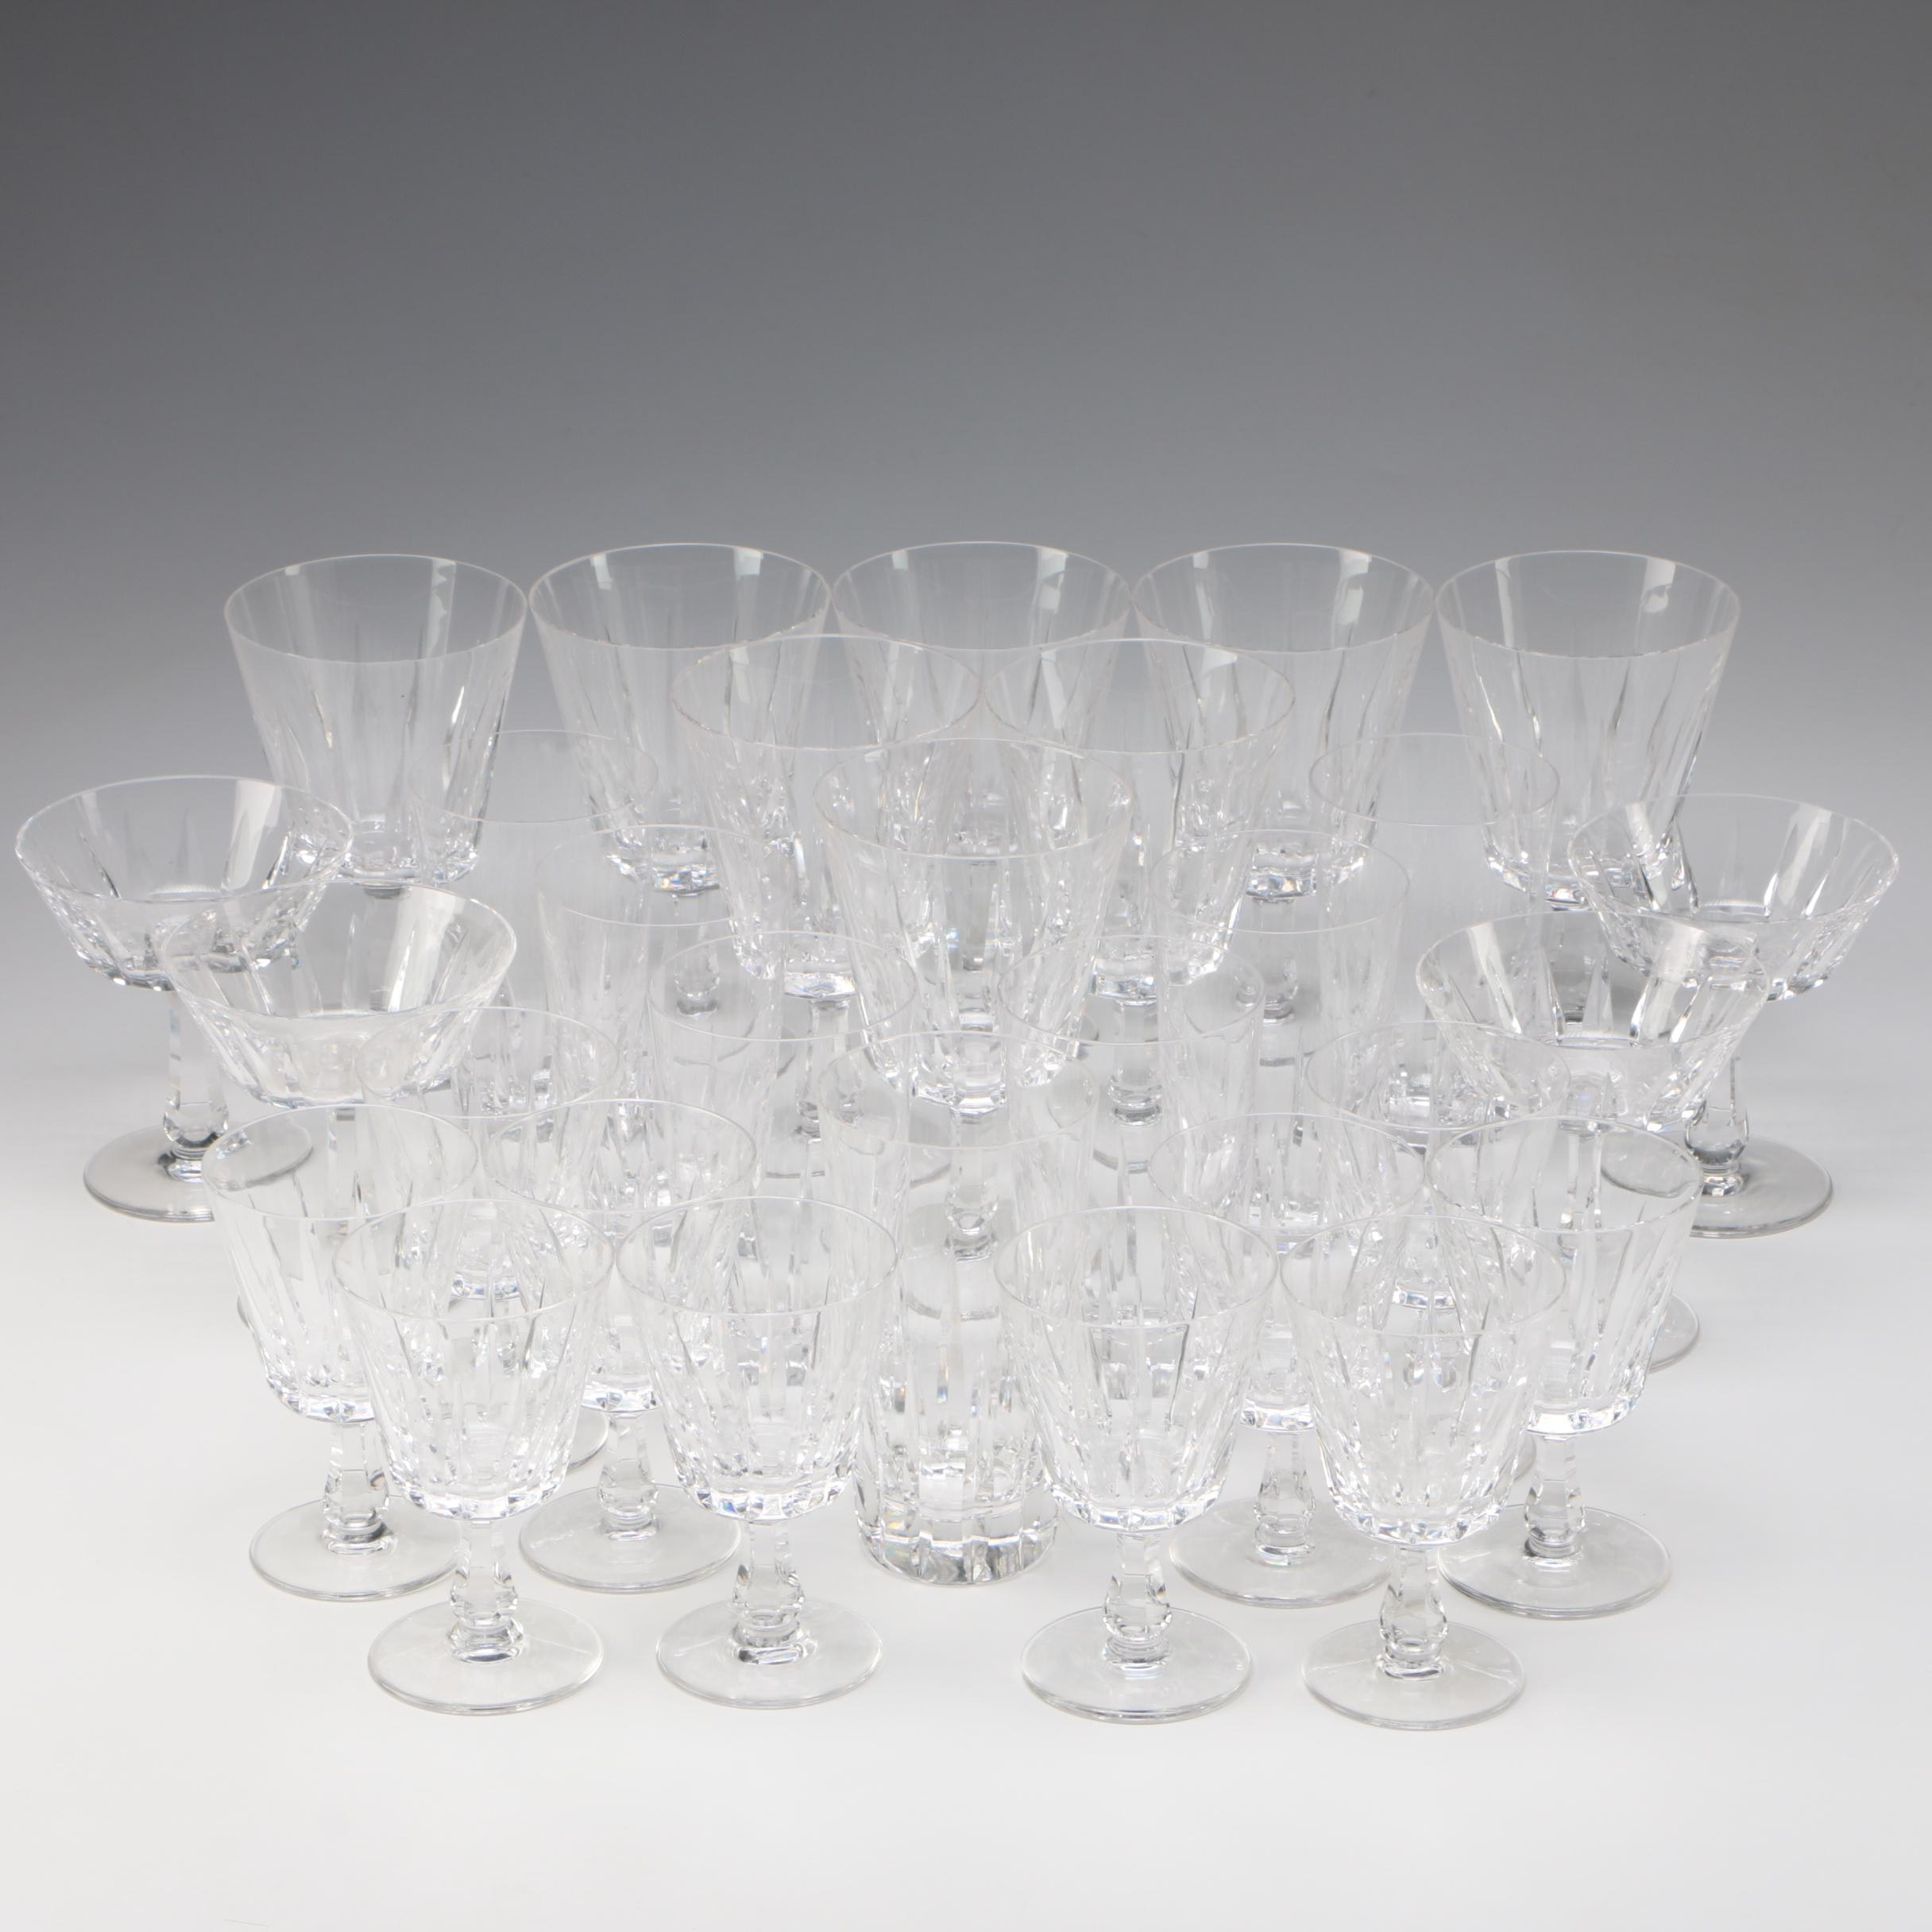 Crystal Wine and Champagne Coupe Glasses and More